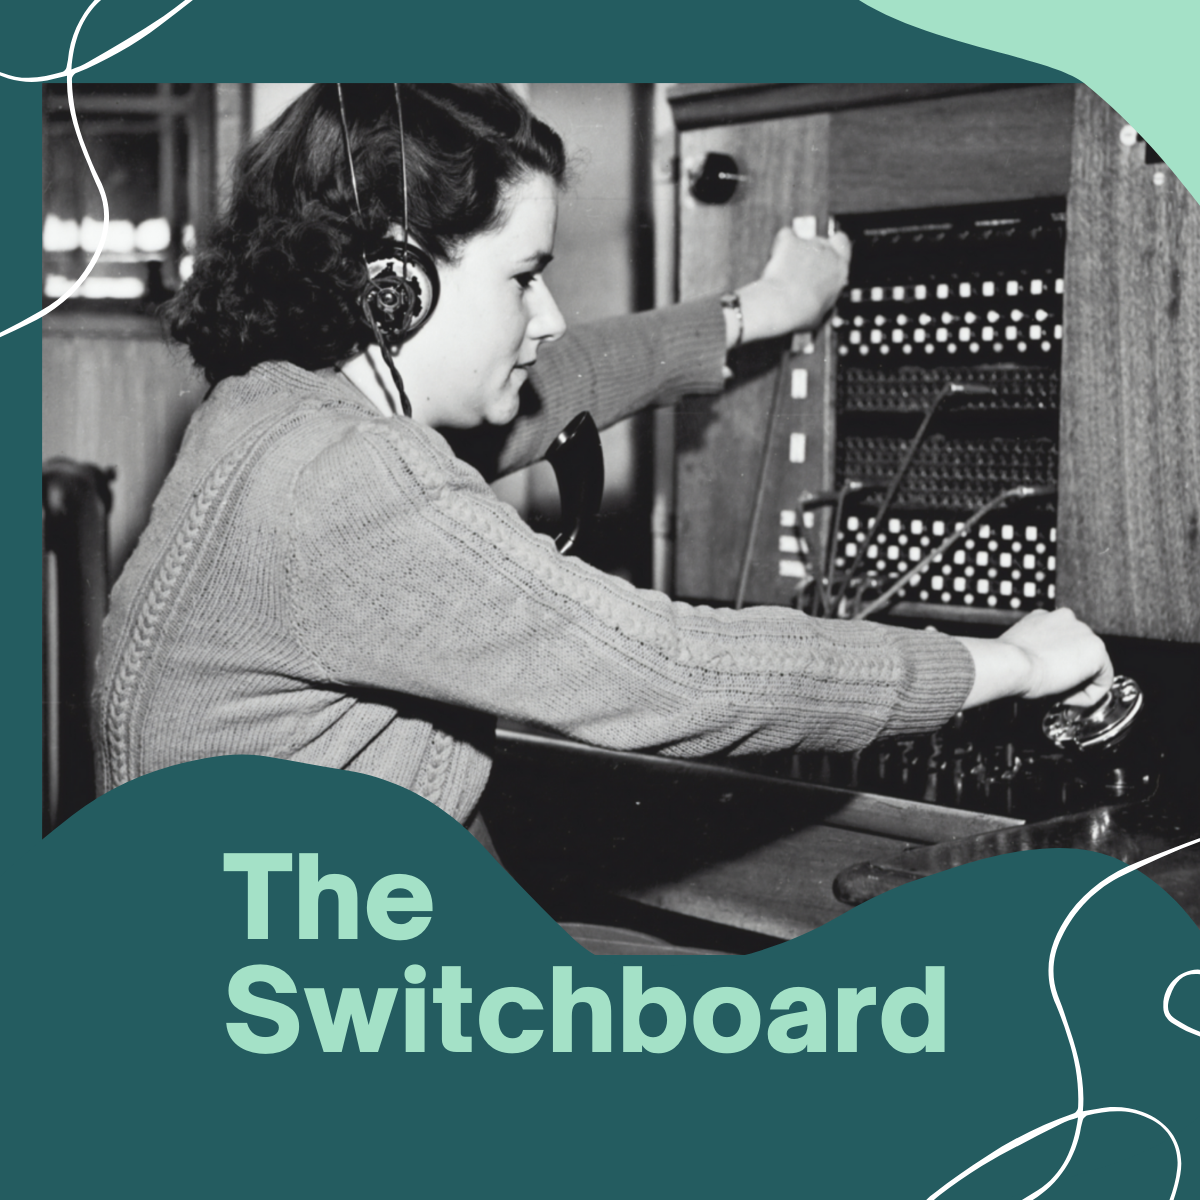 The Switchboard